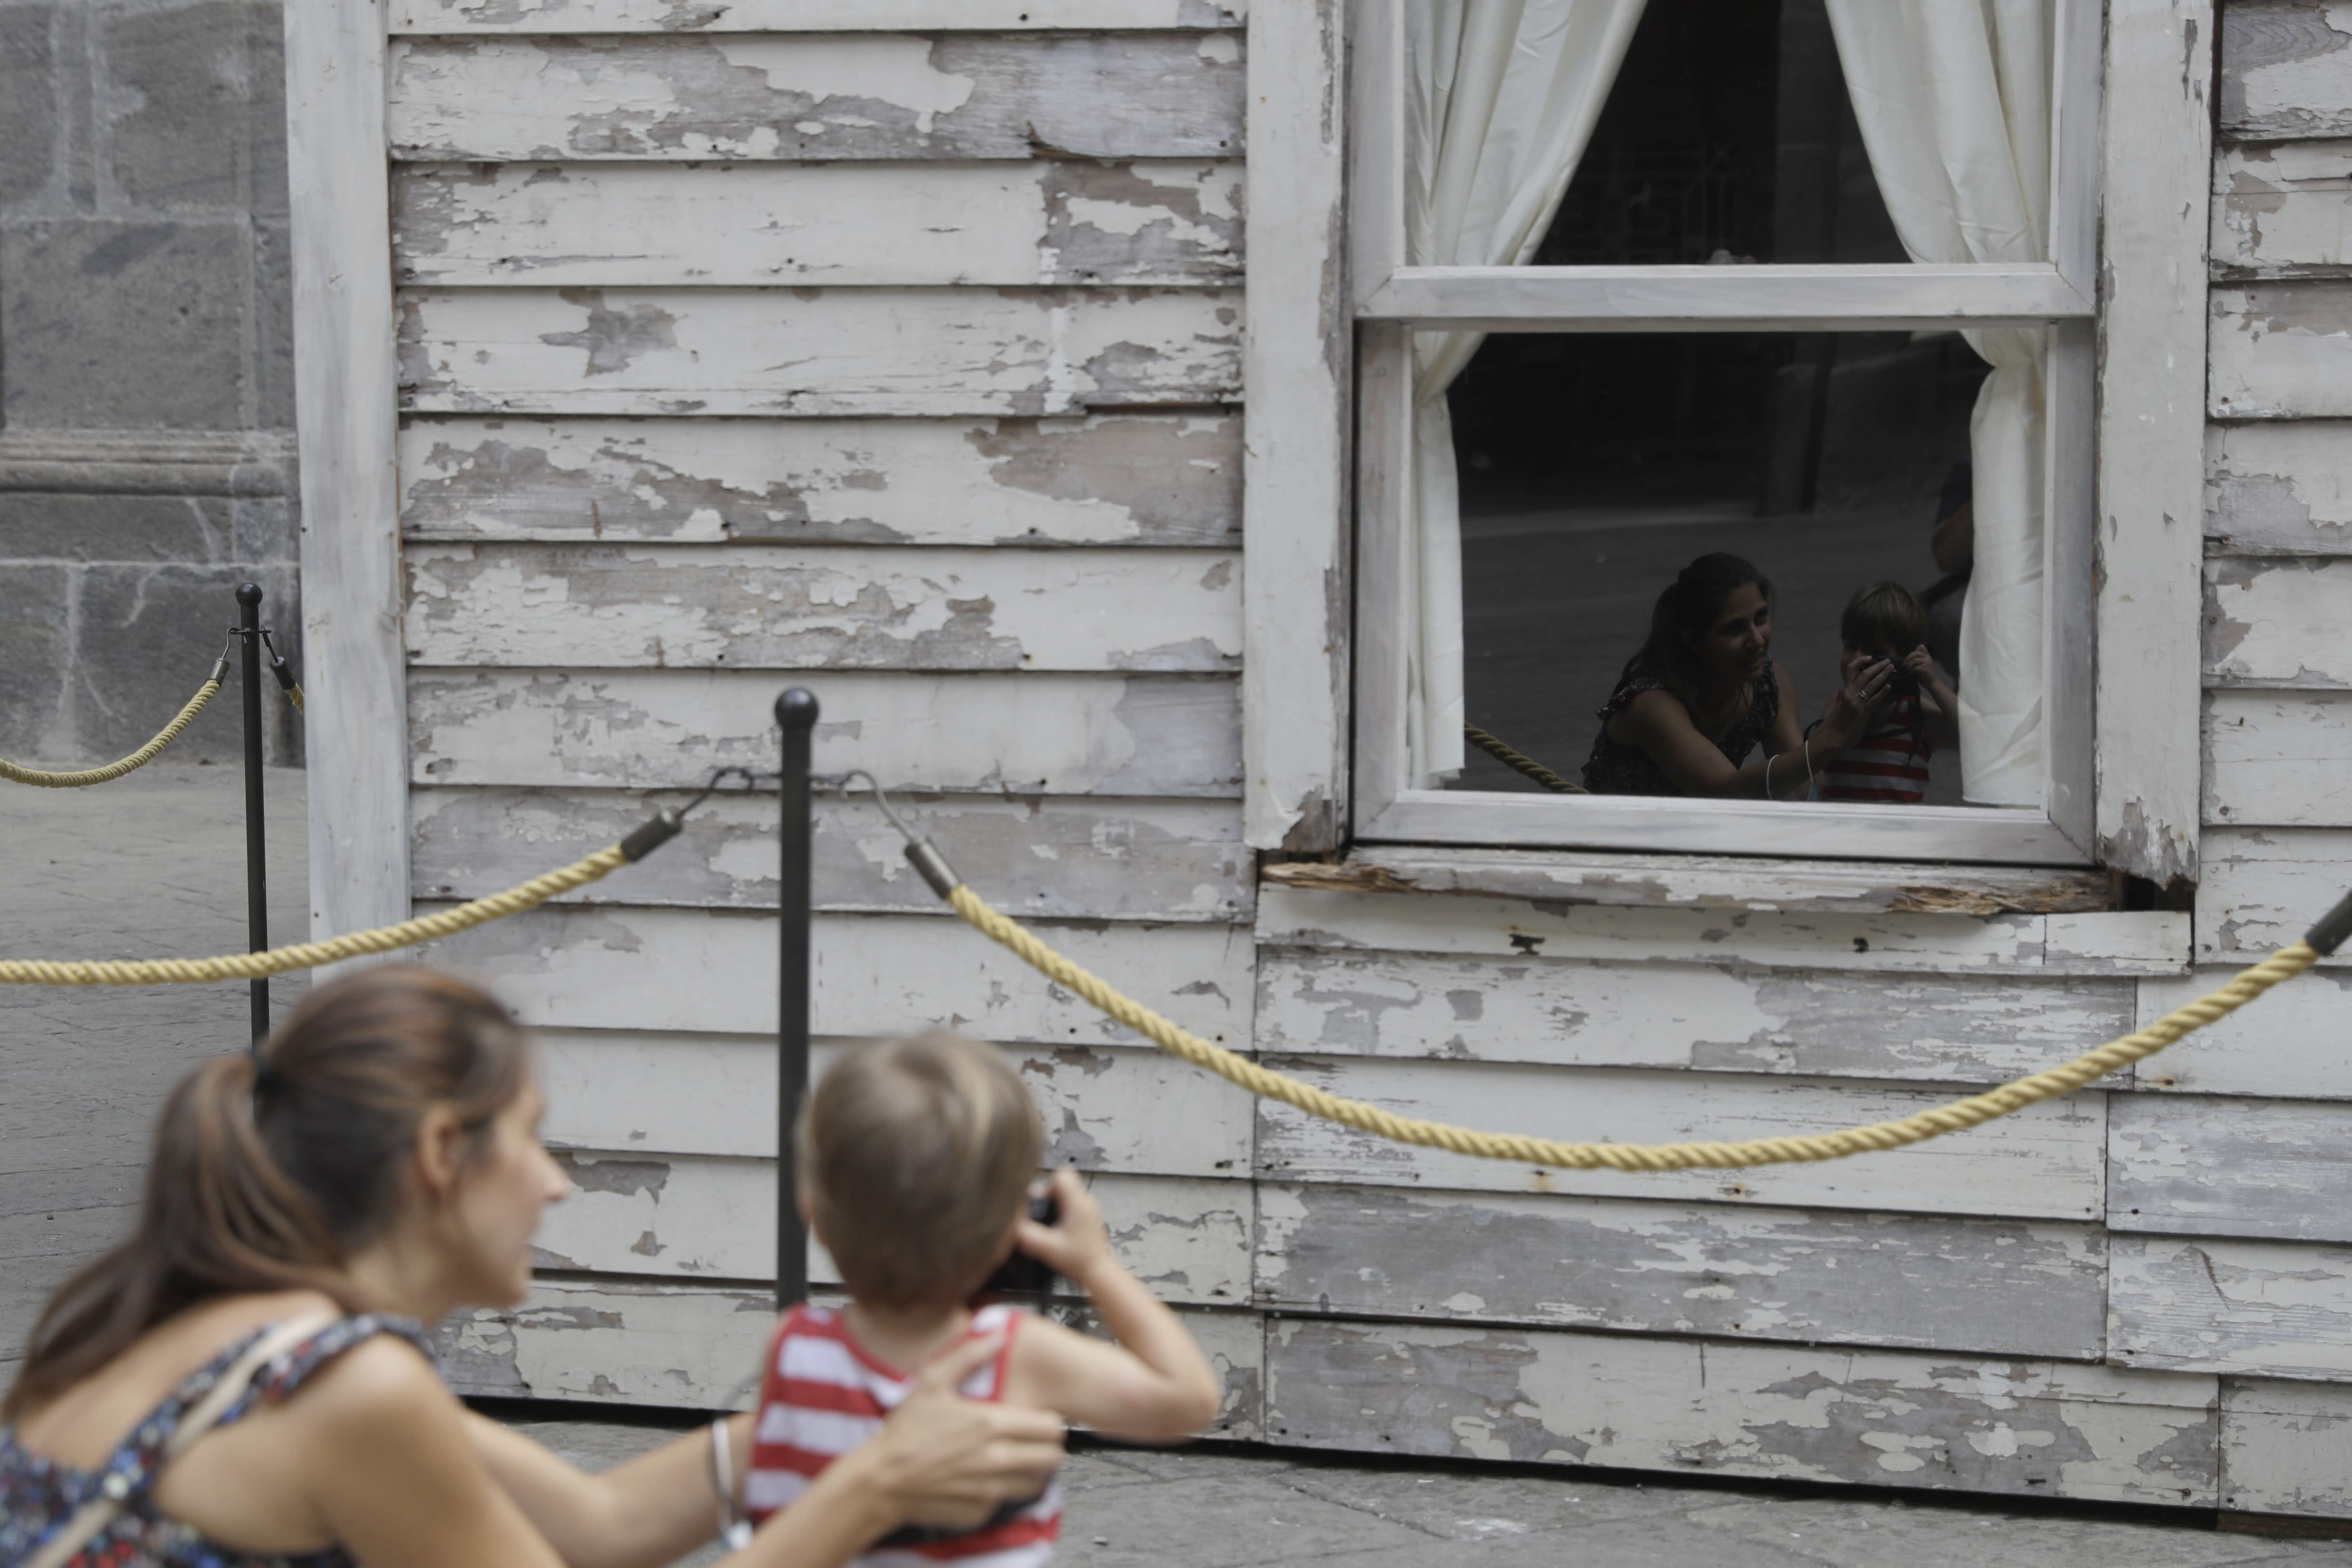 Alice Ridolfi, from Verona, helps her two-year-old son Leone take pictures of the house of U.S. civil rights campaigner Rosa Parks, rebuilt by artist Ryan Mendoza for public display in Naples, Italy, Tuesday, Sept. 15, 2020. The rundown, paint-chipped Detroit house where Parks took refuge after her famous bus boycott is going on display in a setting that couldn't be more incongruous: the imposing central courtyard of the 18th century Royal Palace. (AP Photo/Gregorio Borgia)